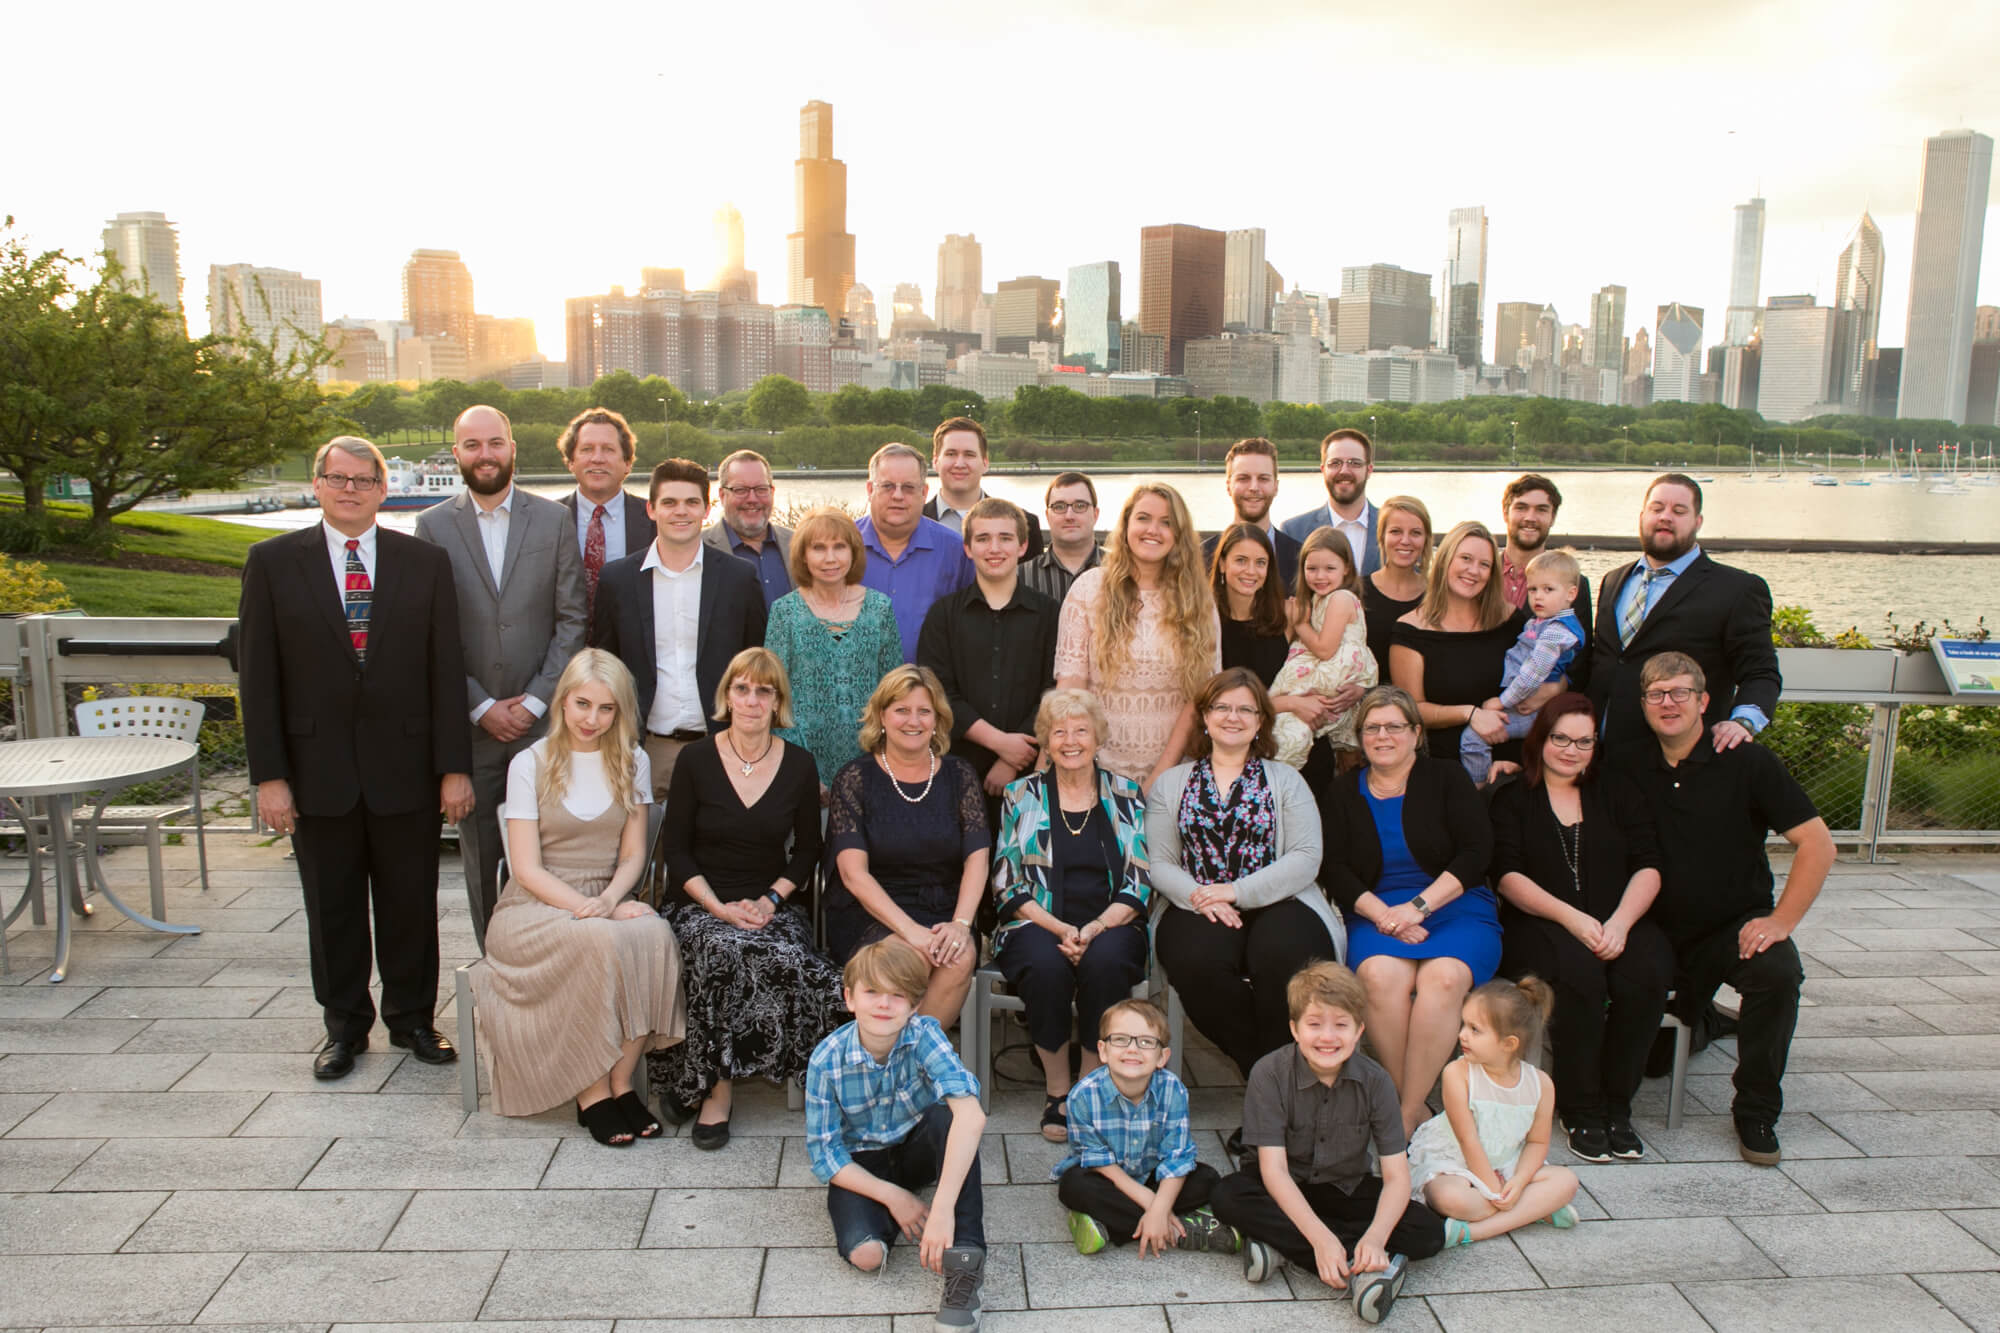 Large Family portrait at Shedd Aquarium Chicago